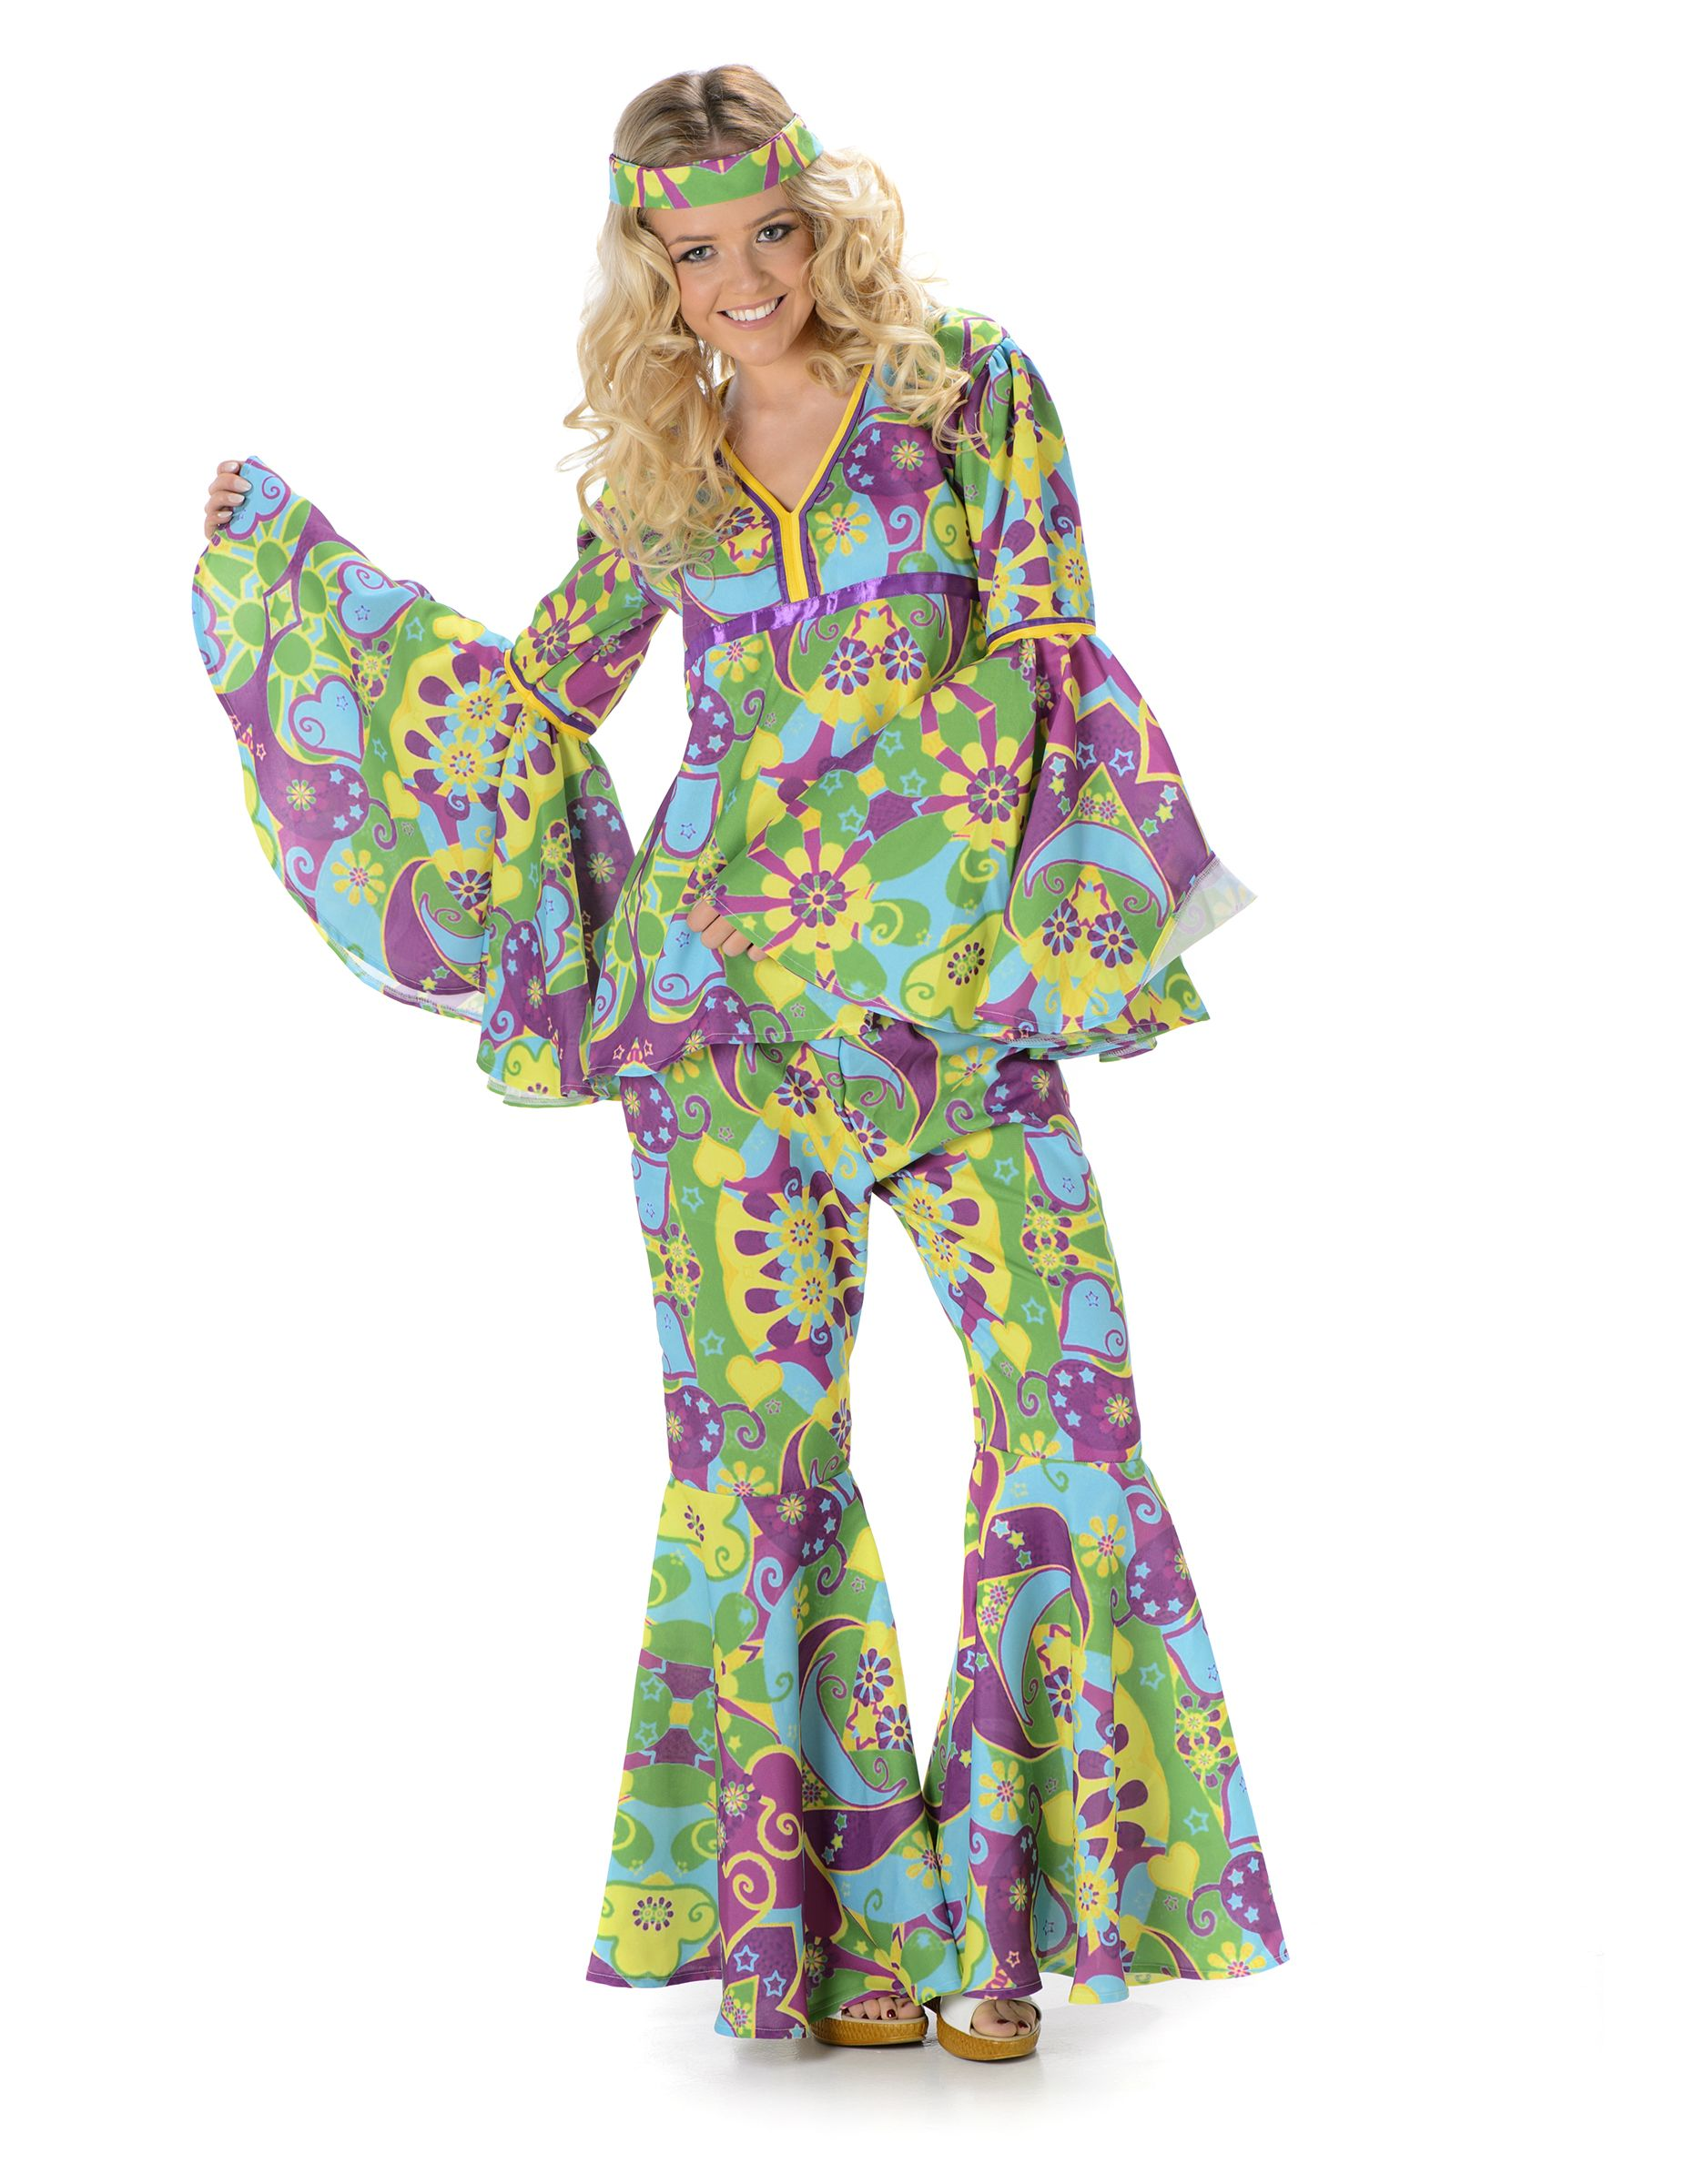 7c7af11ad71 Flower hippie outfit for women  This hippie costume consists of a tunic